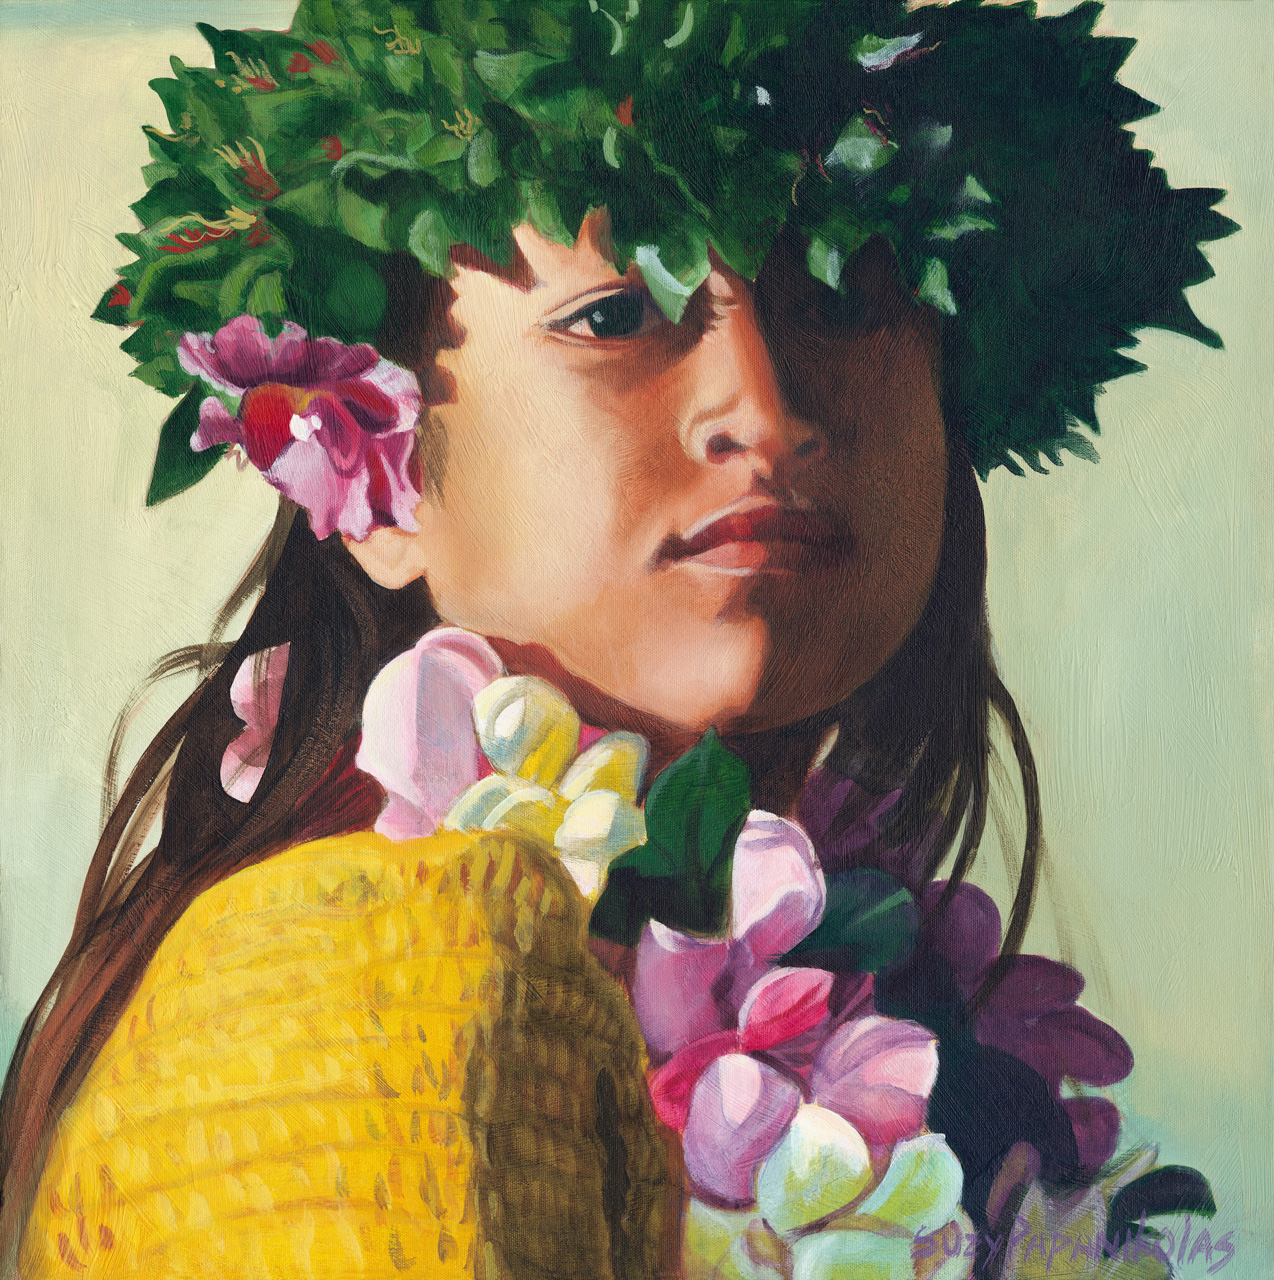 The face of a young hula dancer wearing yellow and a ti leaf haku and a muli color plumeria lei